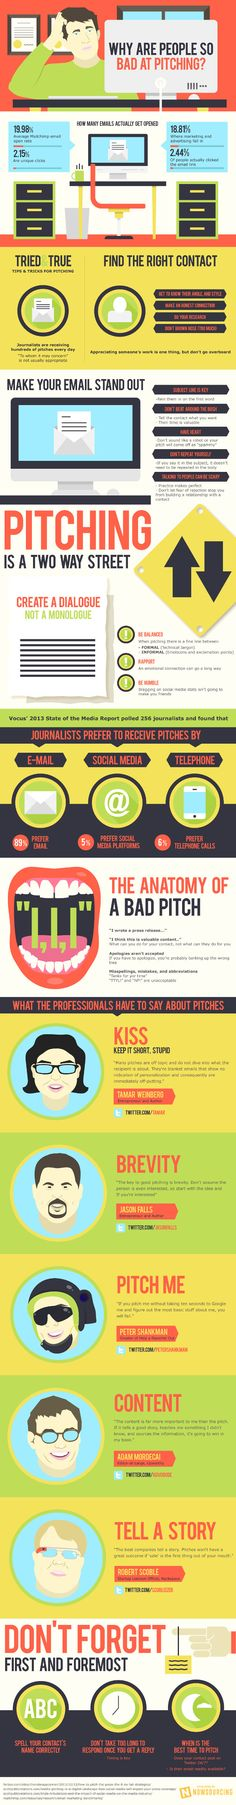 What makes bad pitches so unappealing   from PR Daily - brilliant infographic on pitching media. Public relations magic.